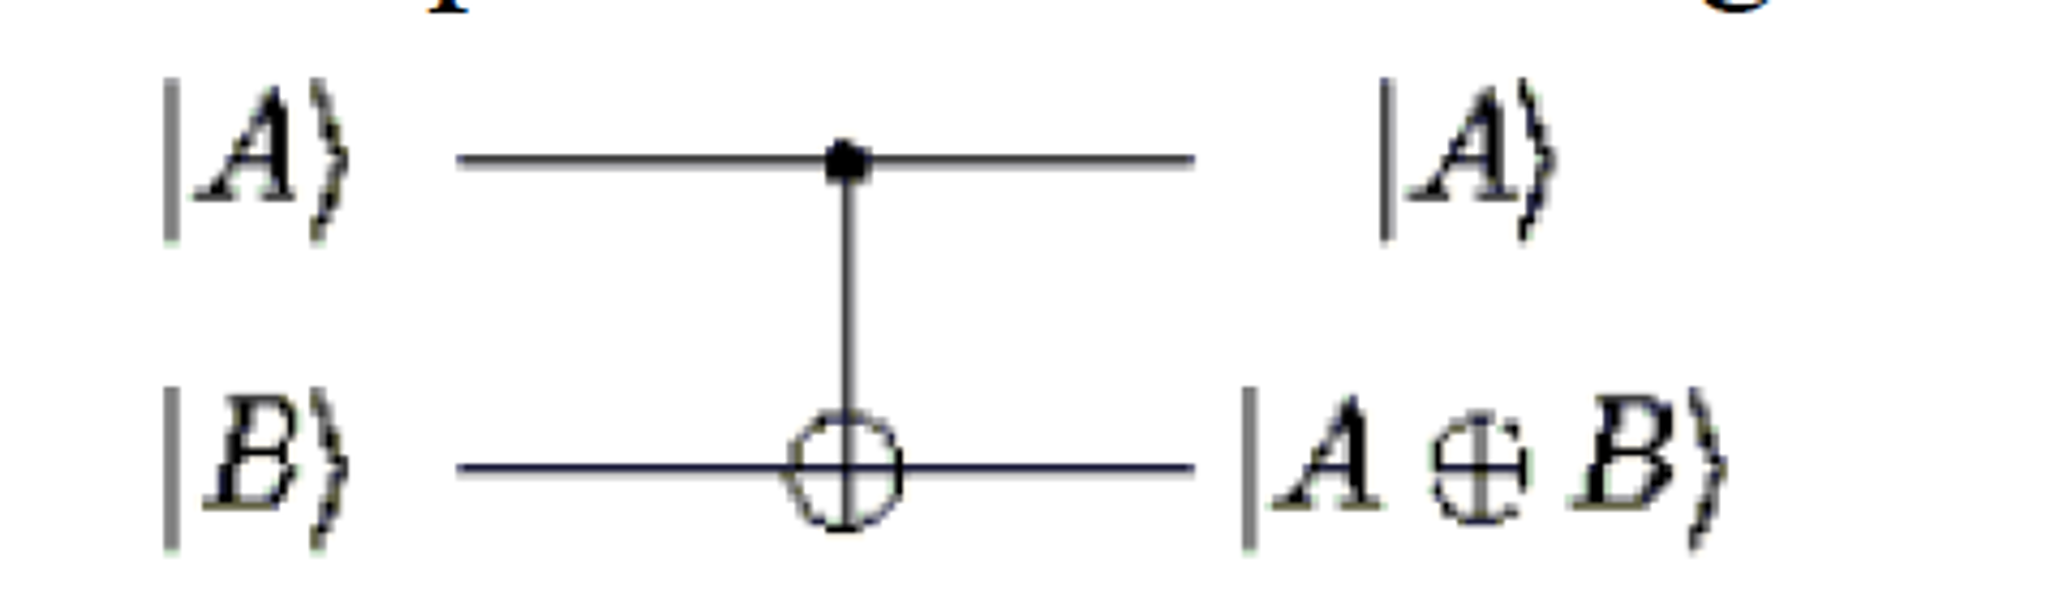 The state of the second particle corresponds to the action of XOR gate. The  quantum circuit diagram of the XOR gate is shown as below.